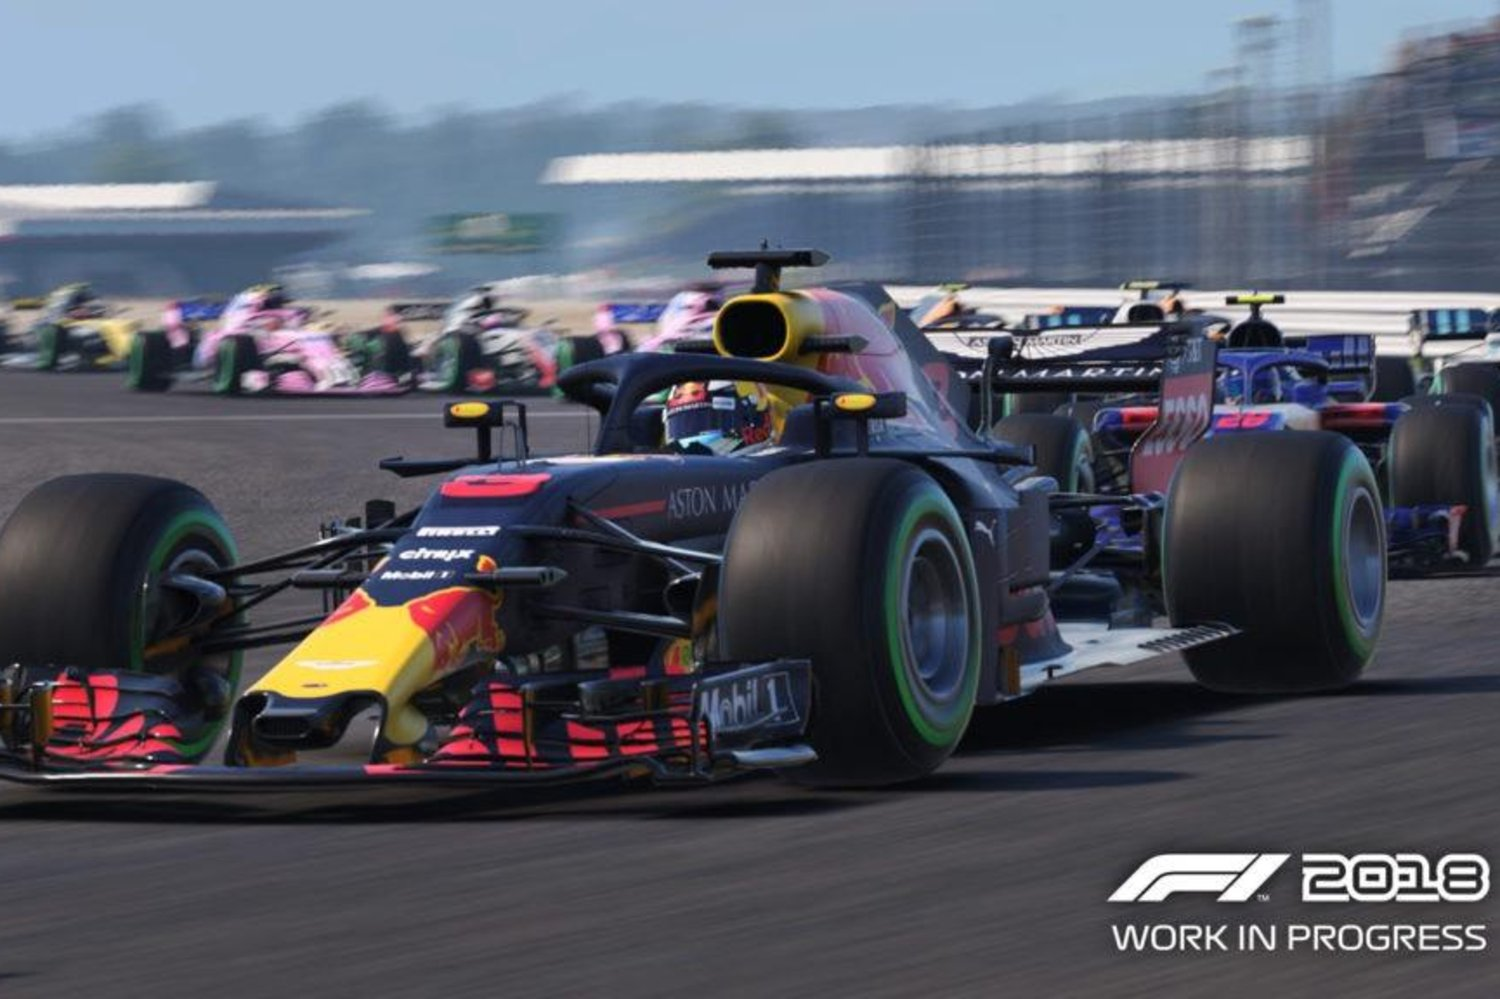 F1 2018 DX12 Beta Build Released by Codemasters; Available for Download through Steam Now